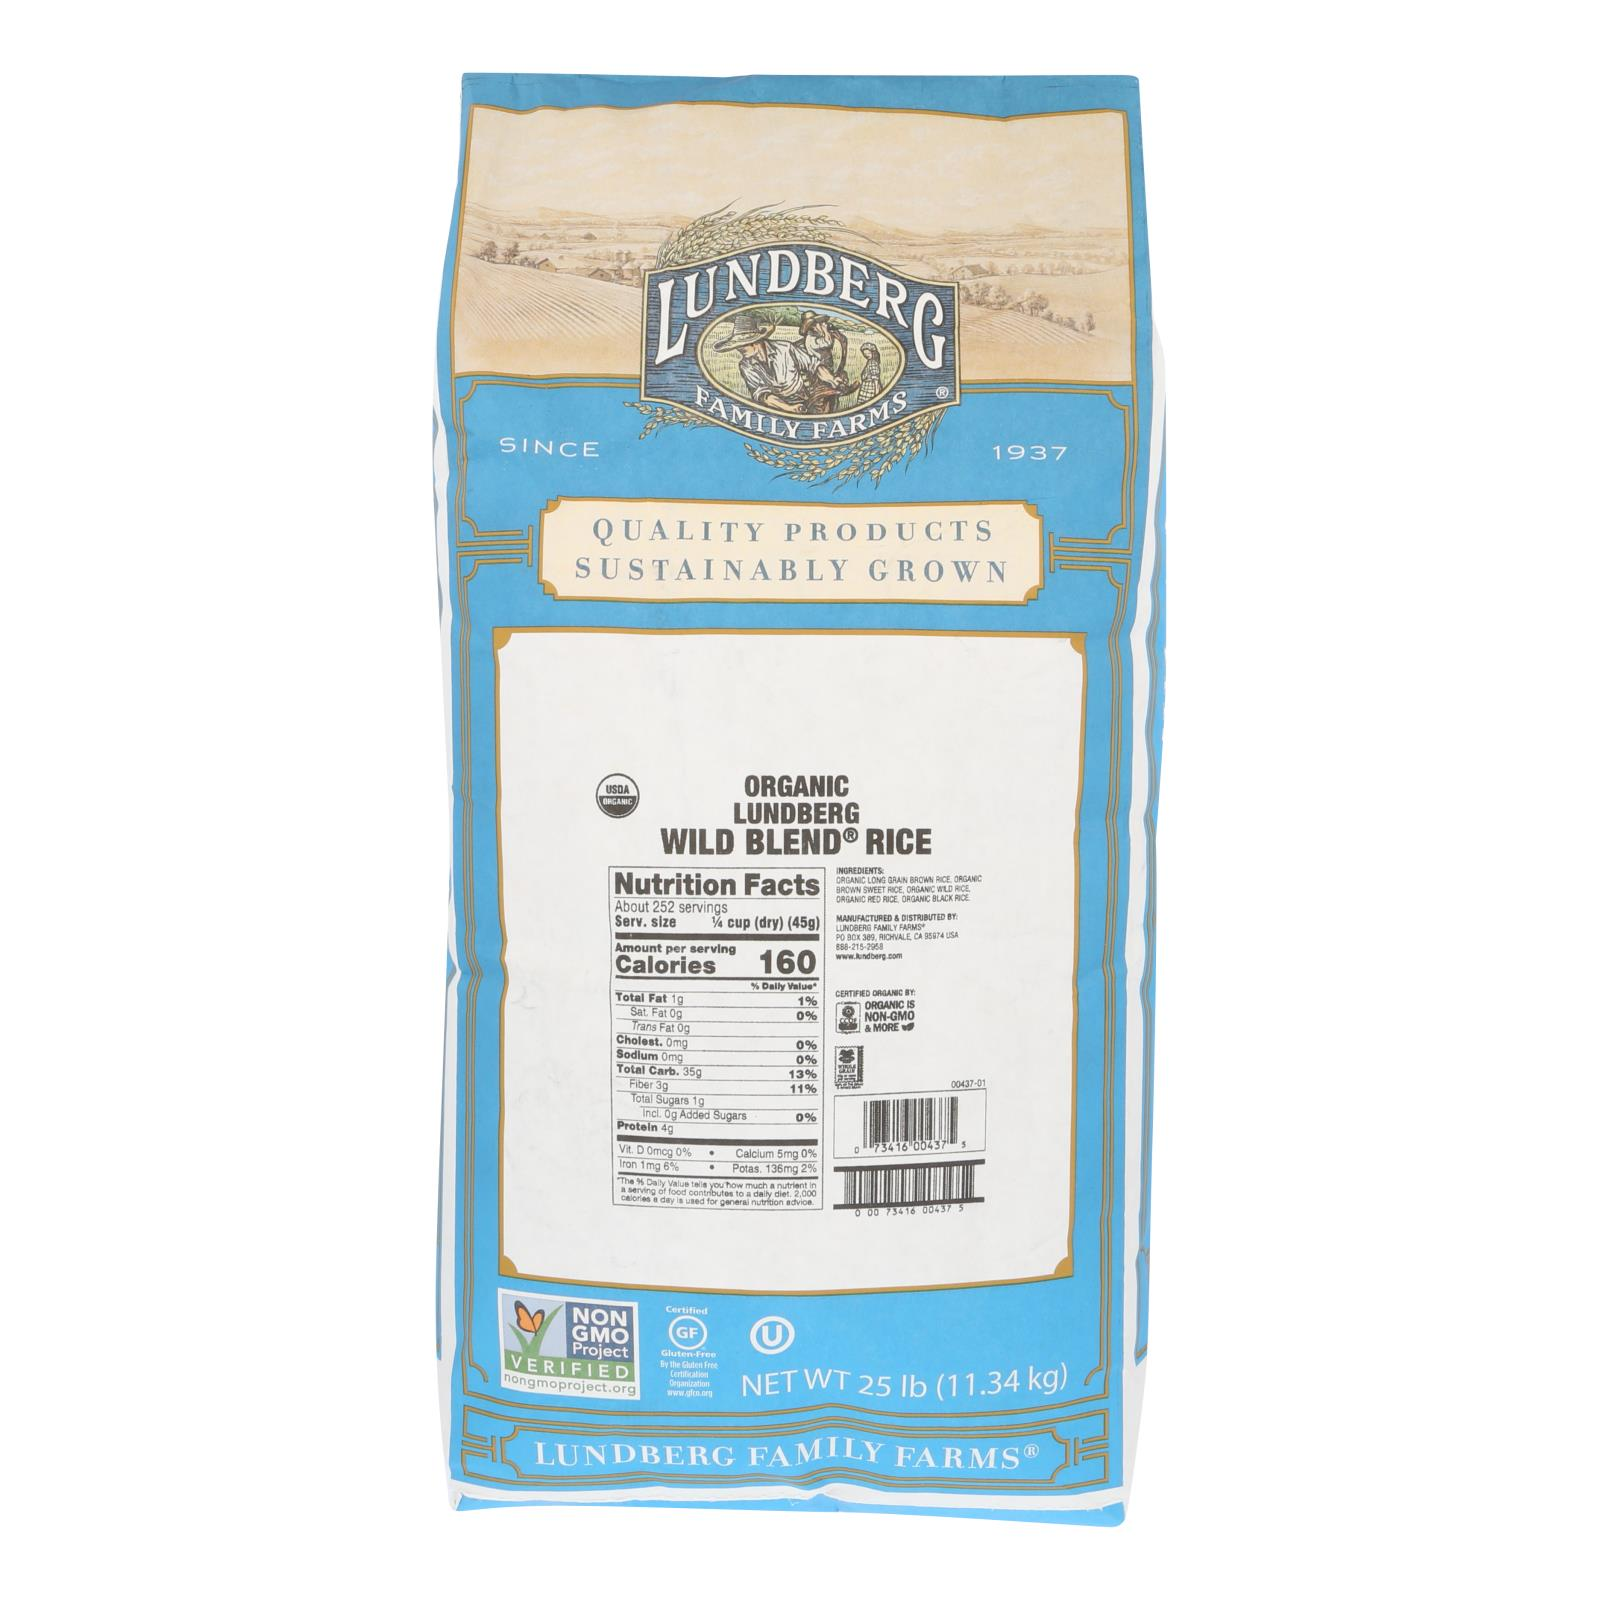 Lundberg Family Farms Organic Wild Blend Gourmet Brown Rice - Case of 25 lbs %count(alt)